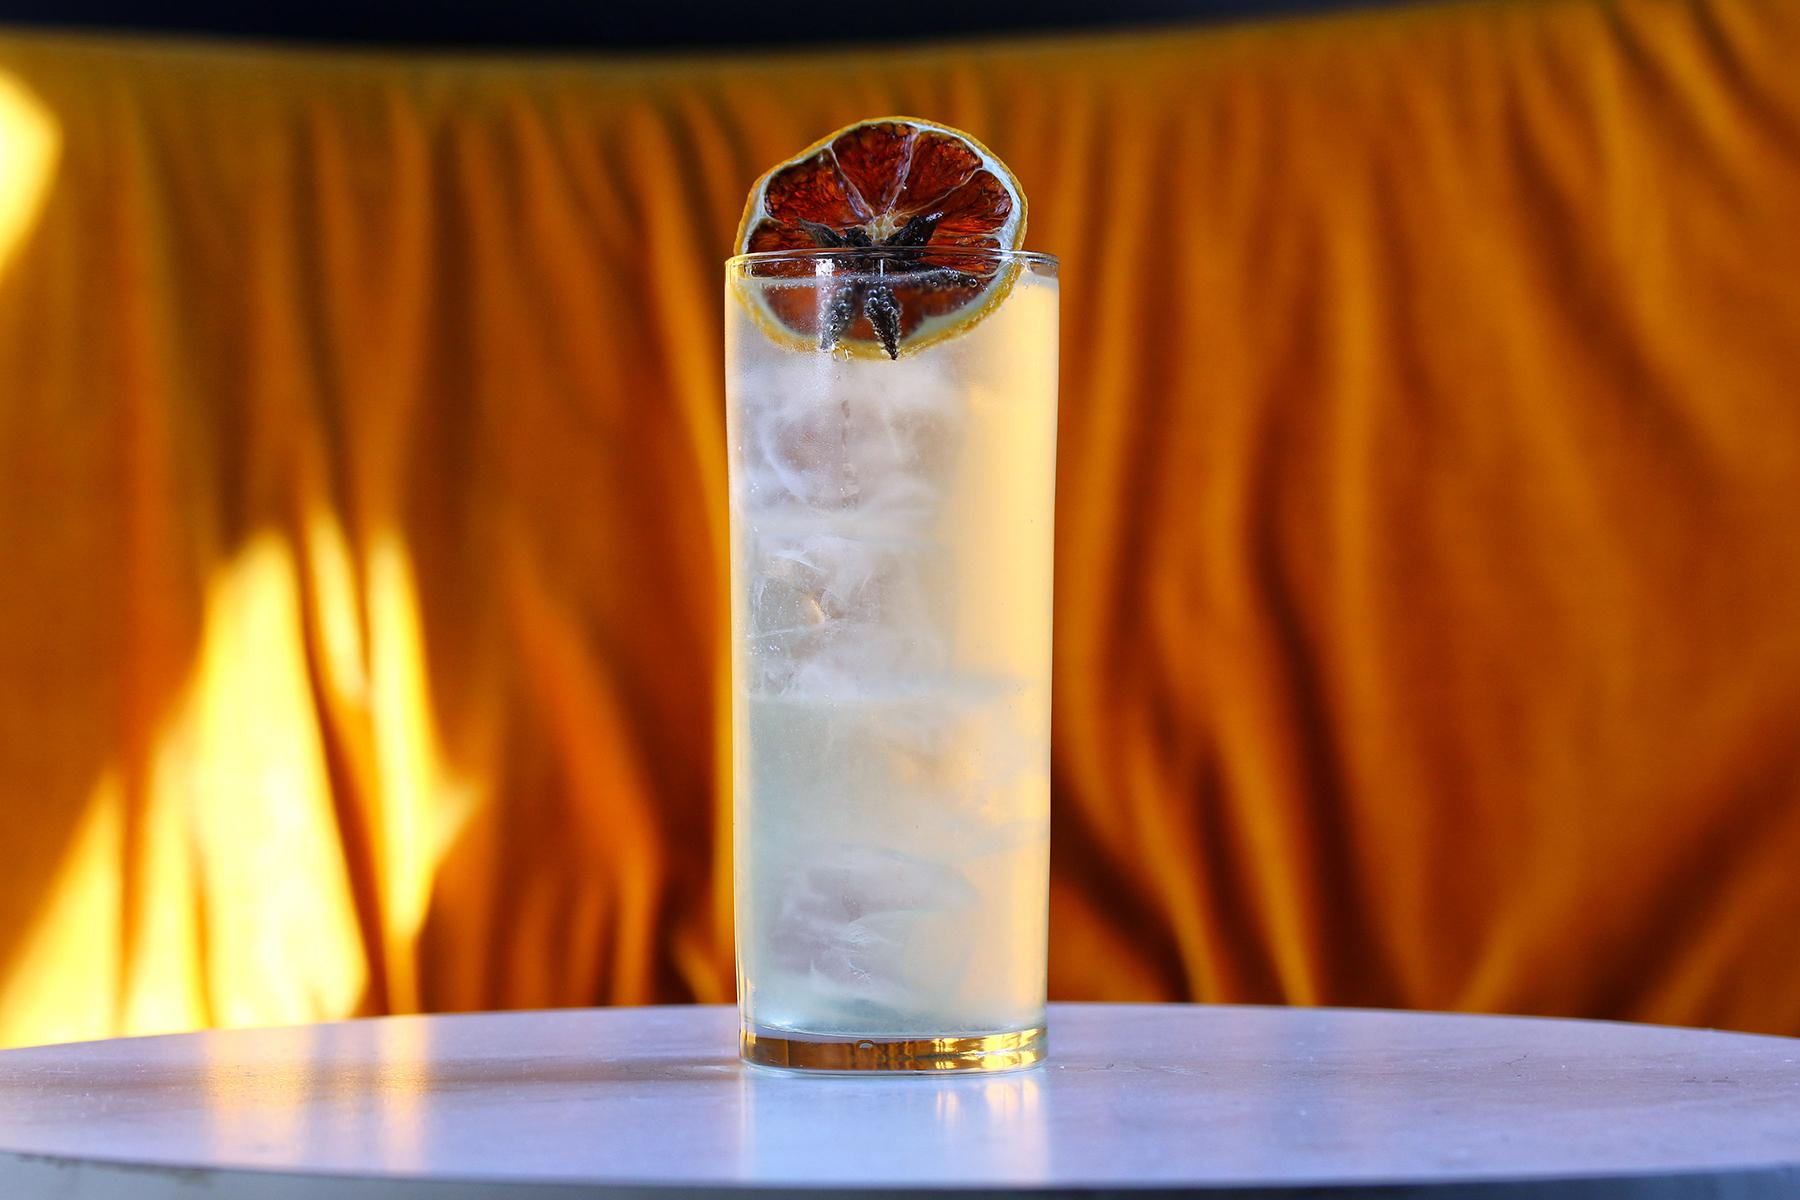 "Soft Notes: An aperitif-style cocktail, mixes Cocchi Americano, Persian lime and carbonated water. ""While in soft notes I tune to oaten reed Gay hopes, and amorous sorrows of the mead."" (Image: Jai Williams)"